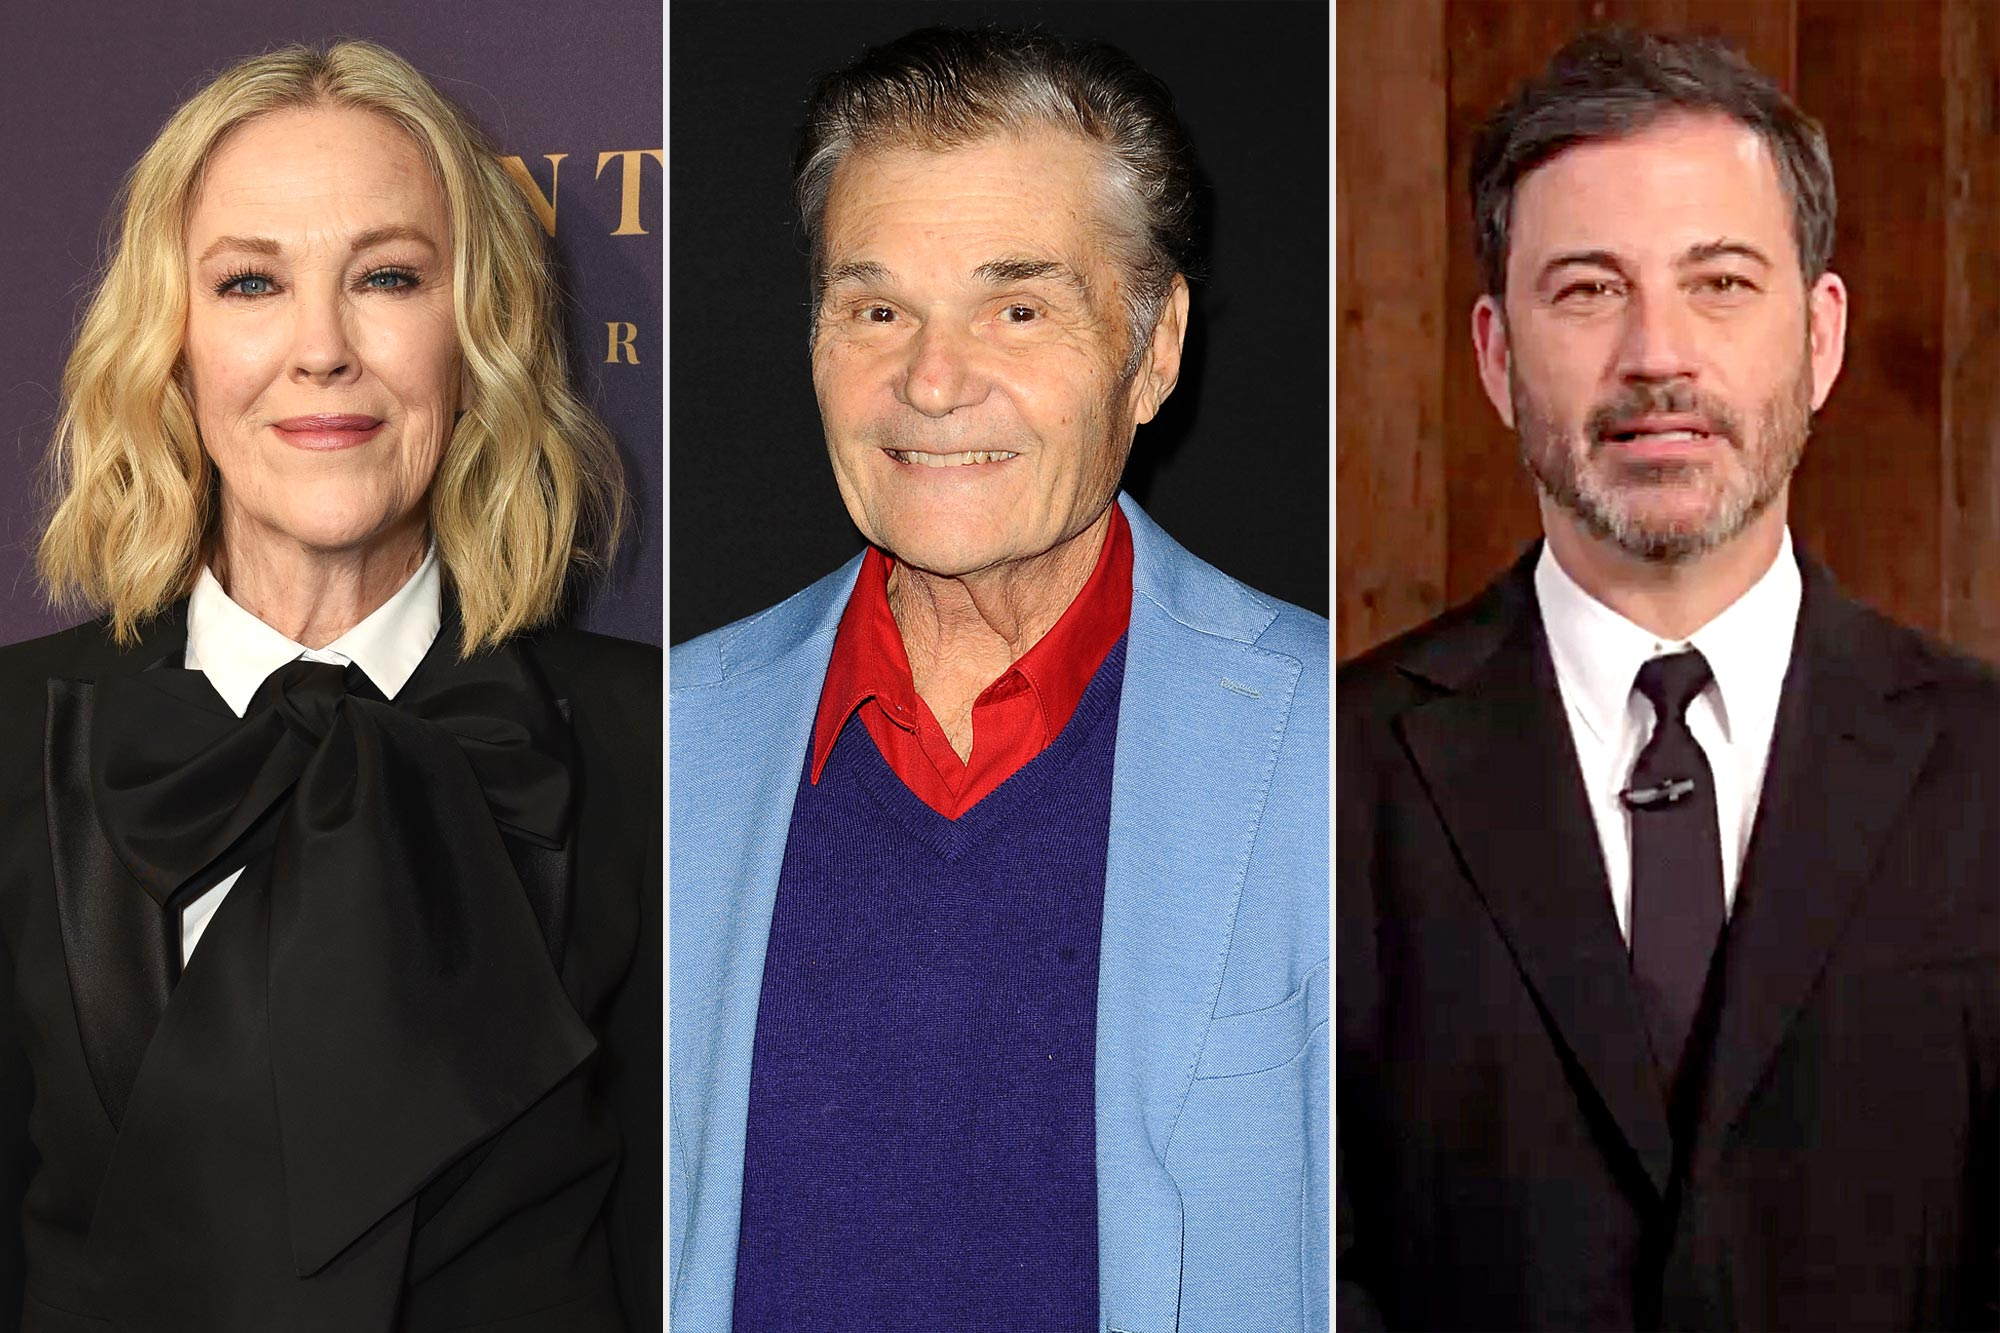 Catherine O'Hara, Fred Willard, and Jimmy Kimmel